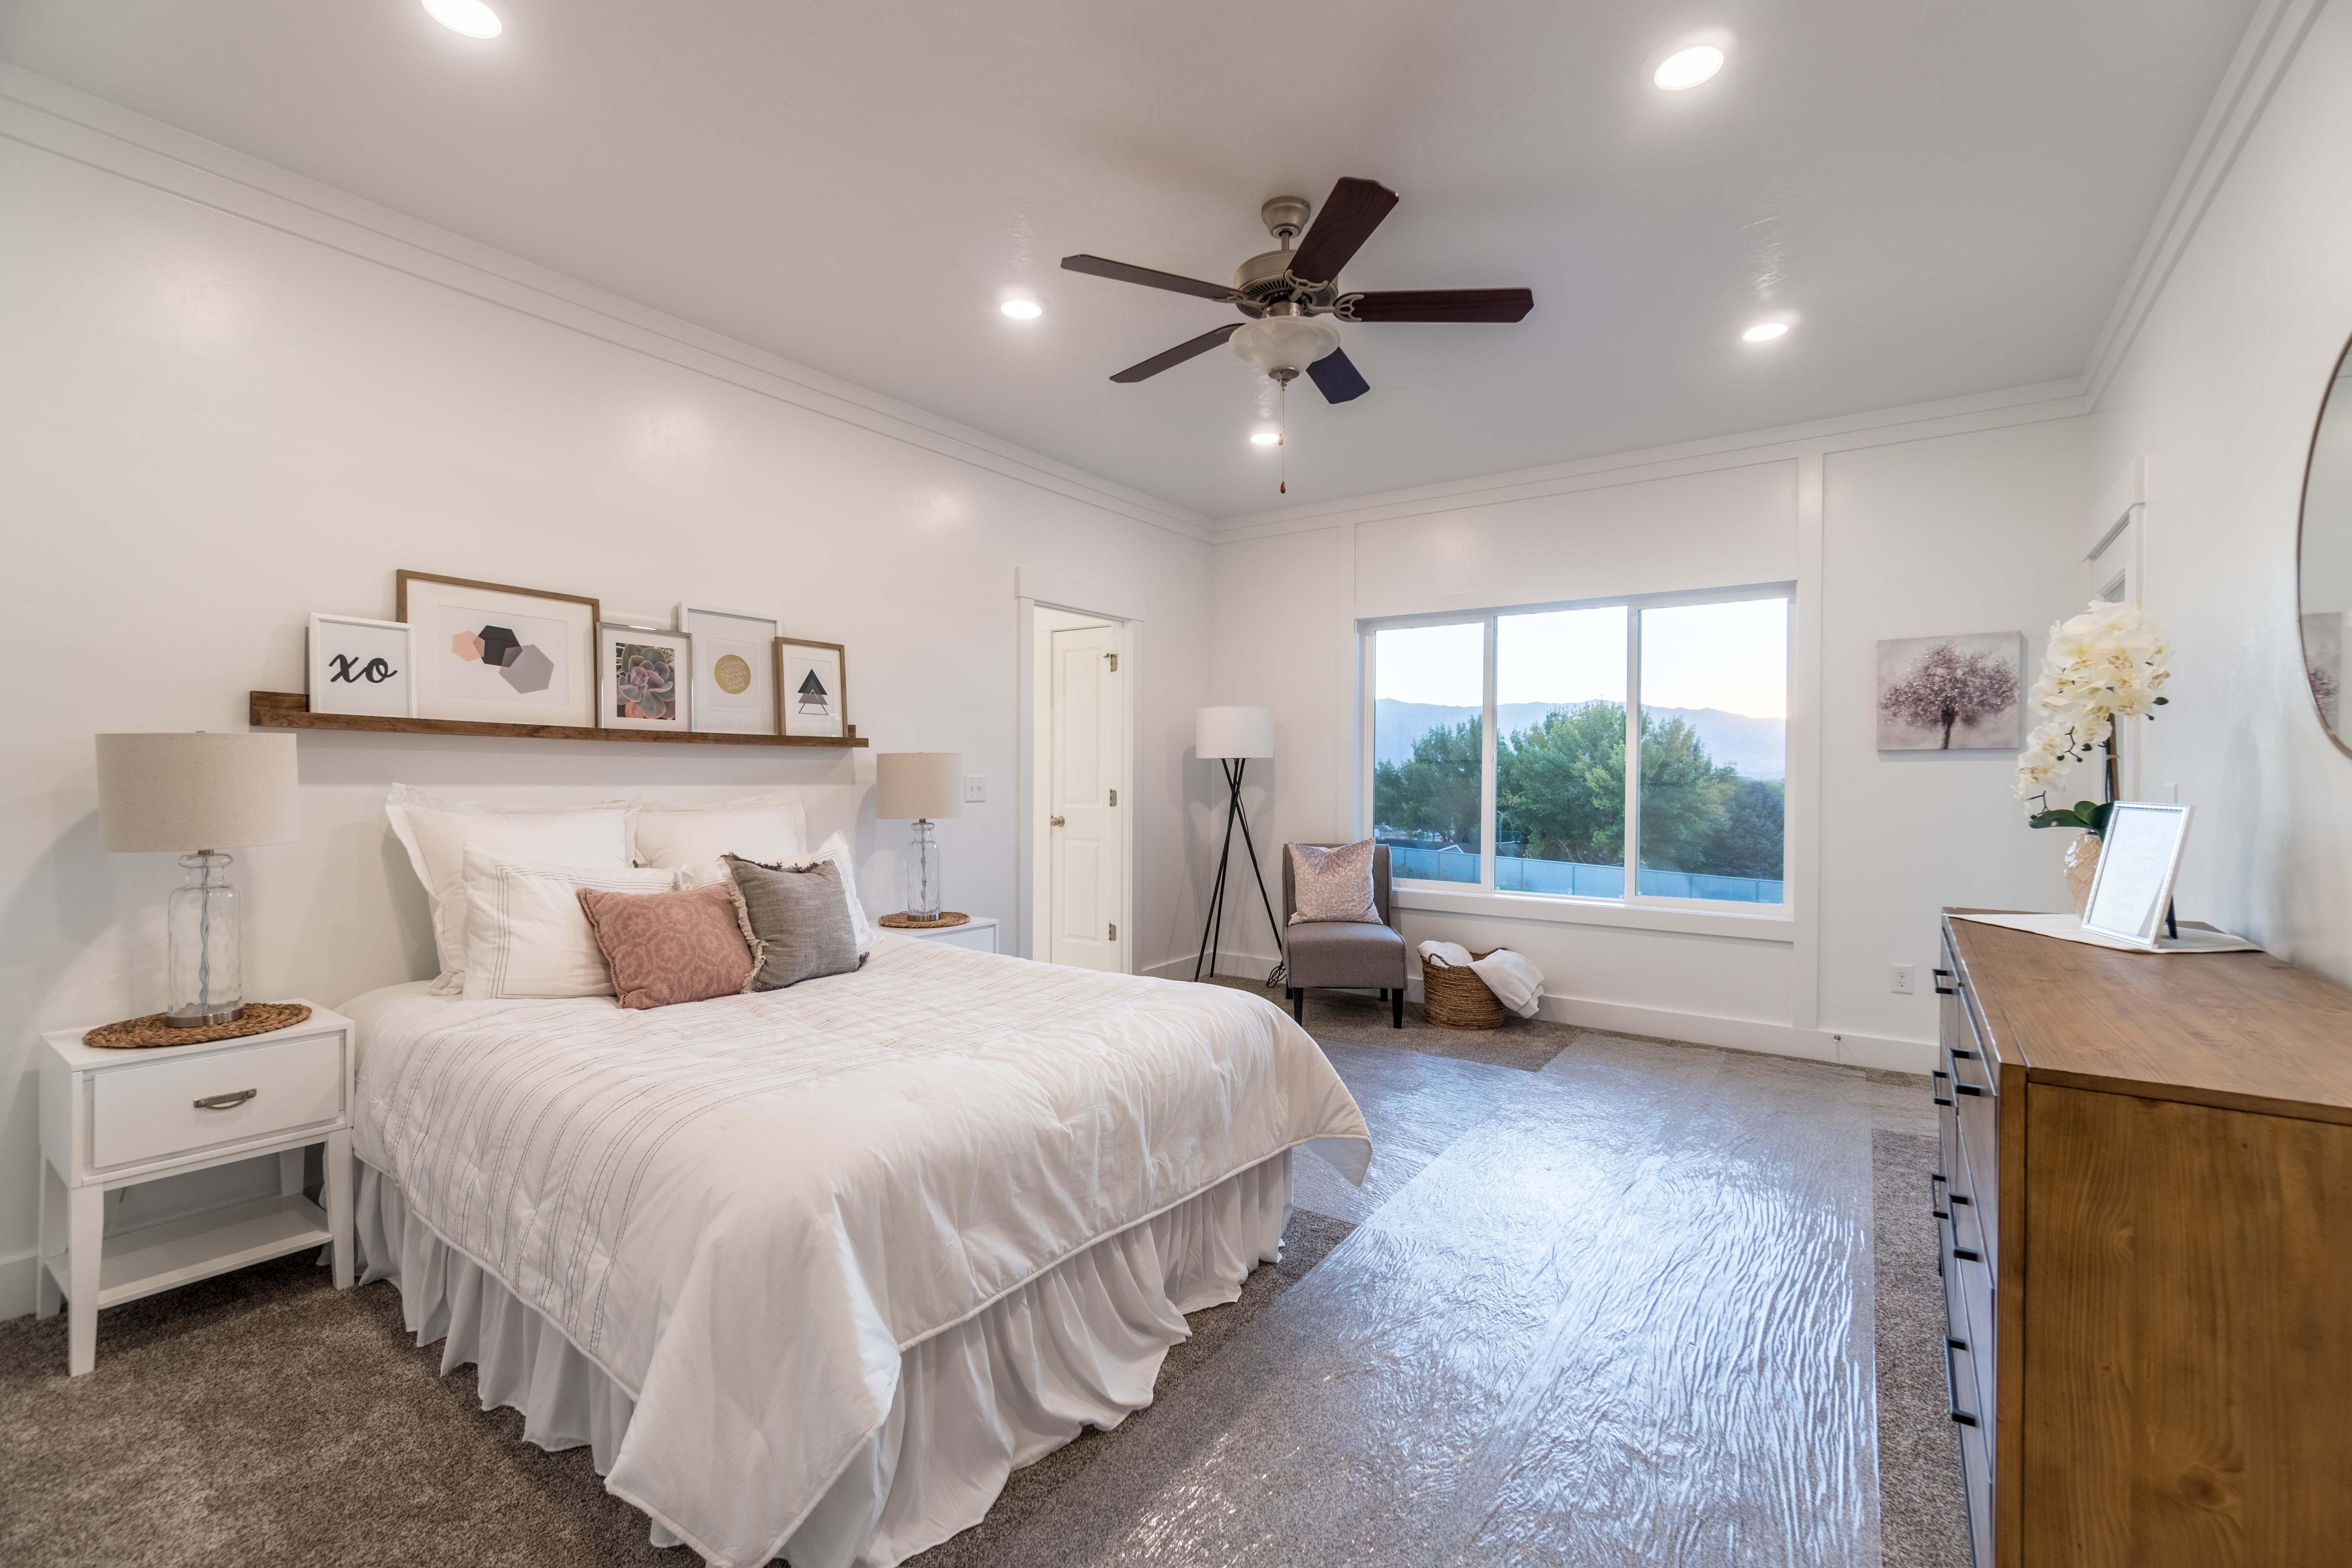 Bedroom featured in the Summerlyn (SOG) By Visionary Homes in Logan, UT